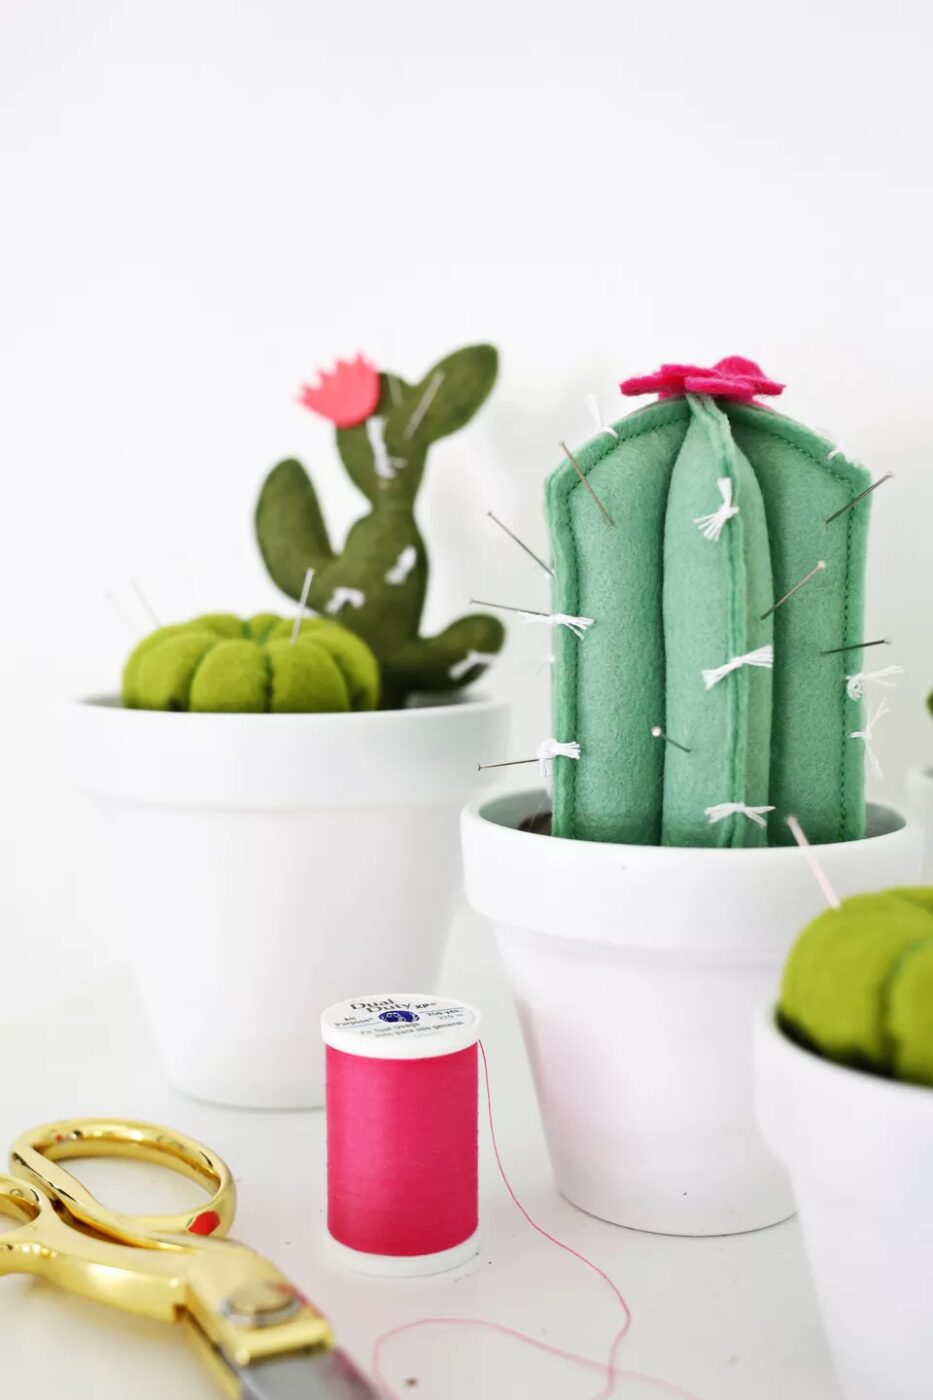 14 DIY Cactus Inspired Projects (Part 2)